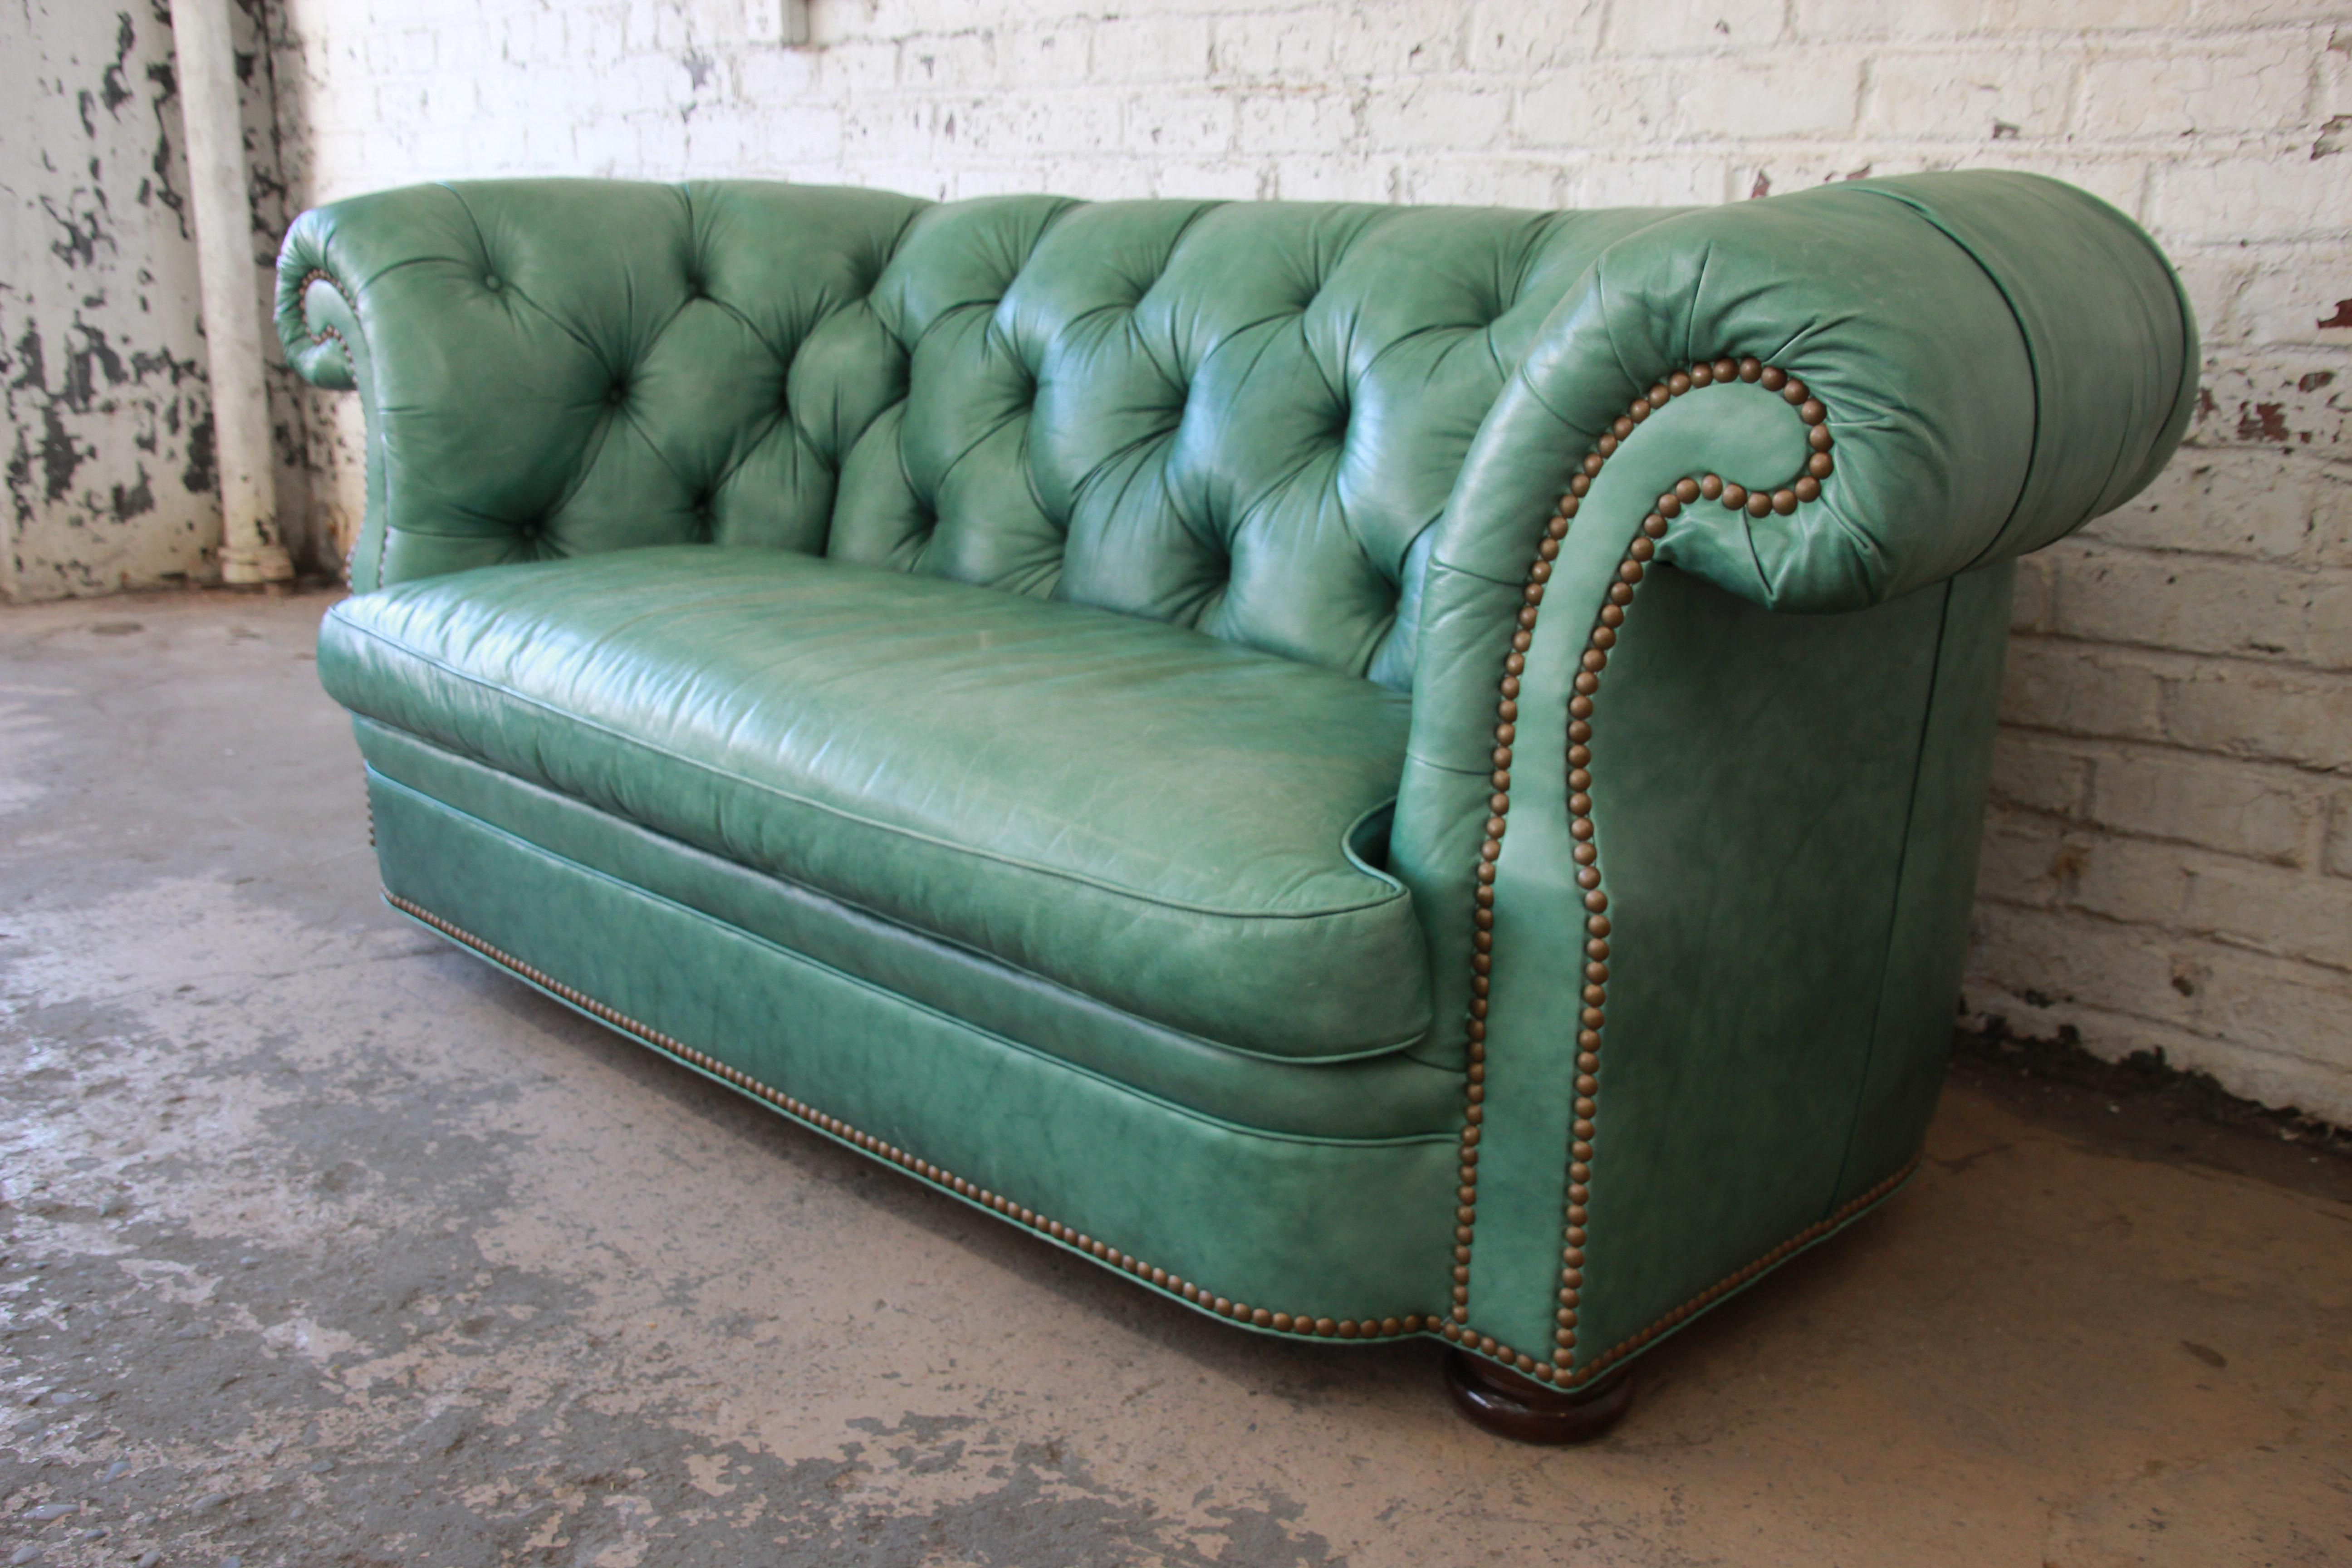 Teal Chesterfield Sofa superb vintage teal tufted leather chesterfield sofa by hancock